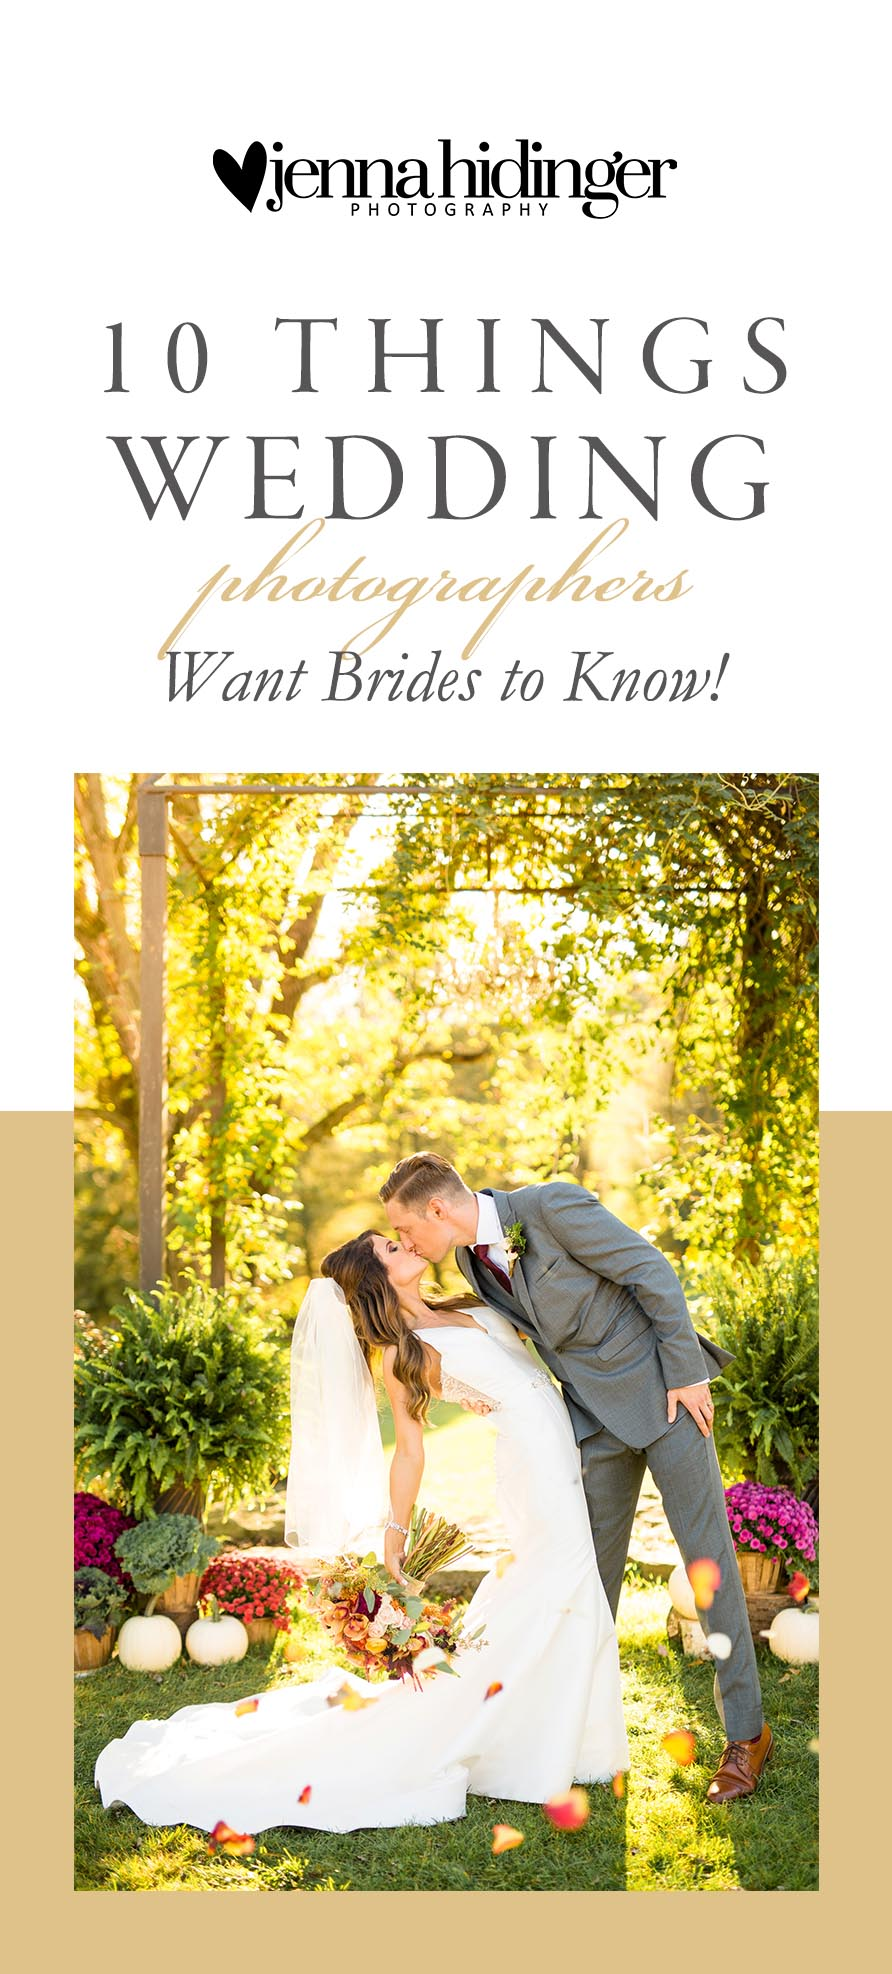 10 Things Wedding Photographers Want Brides to Know.jpg